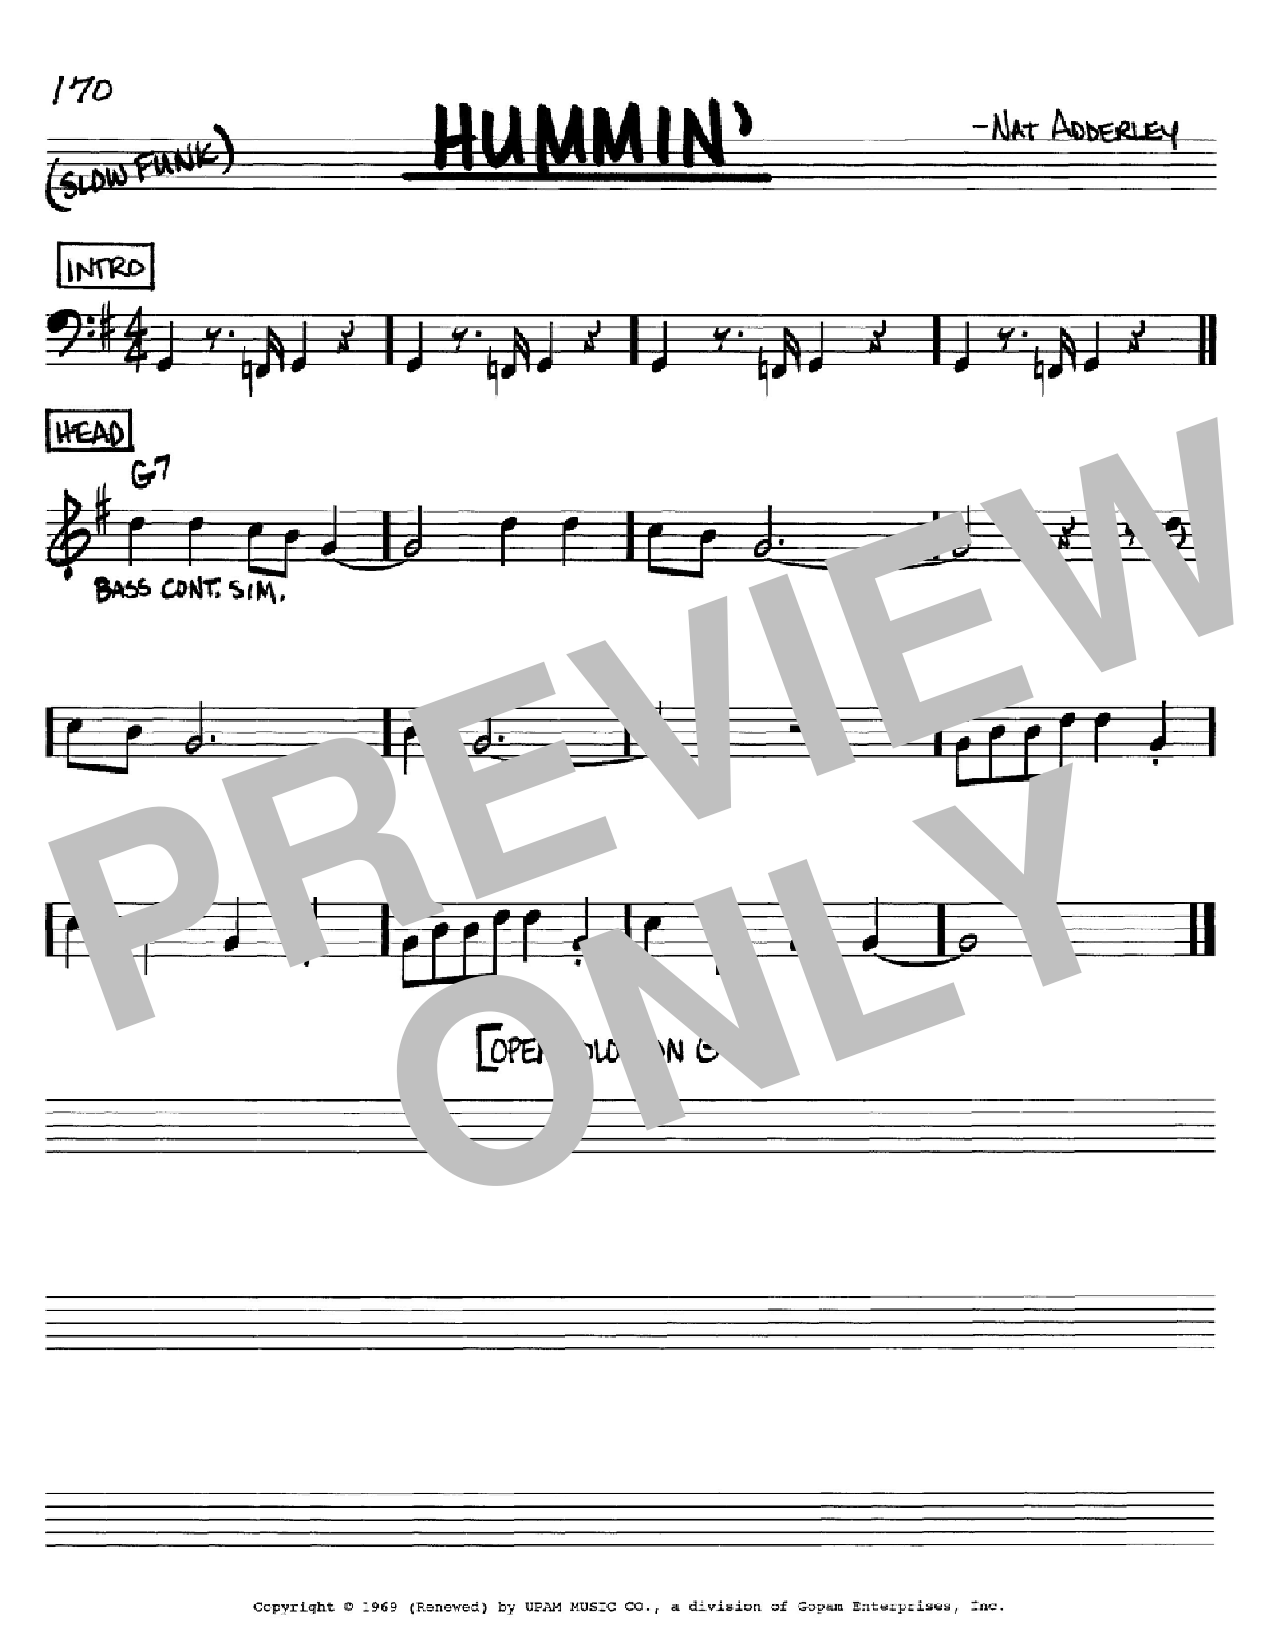 Hummin' Sheet Music